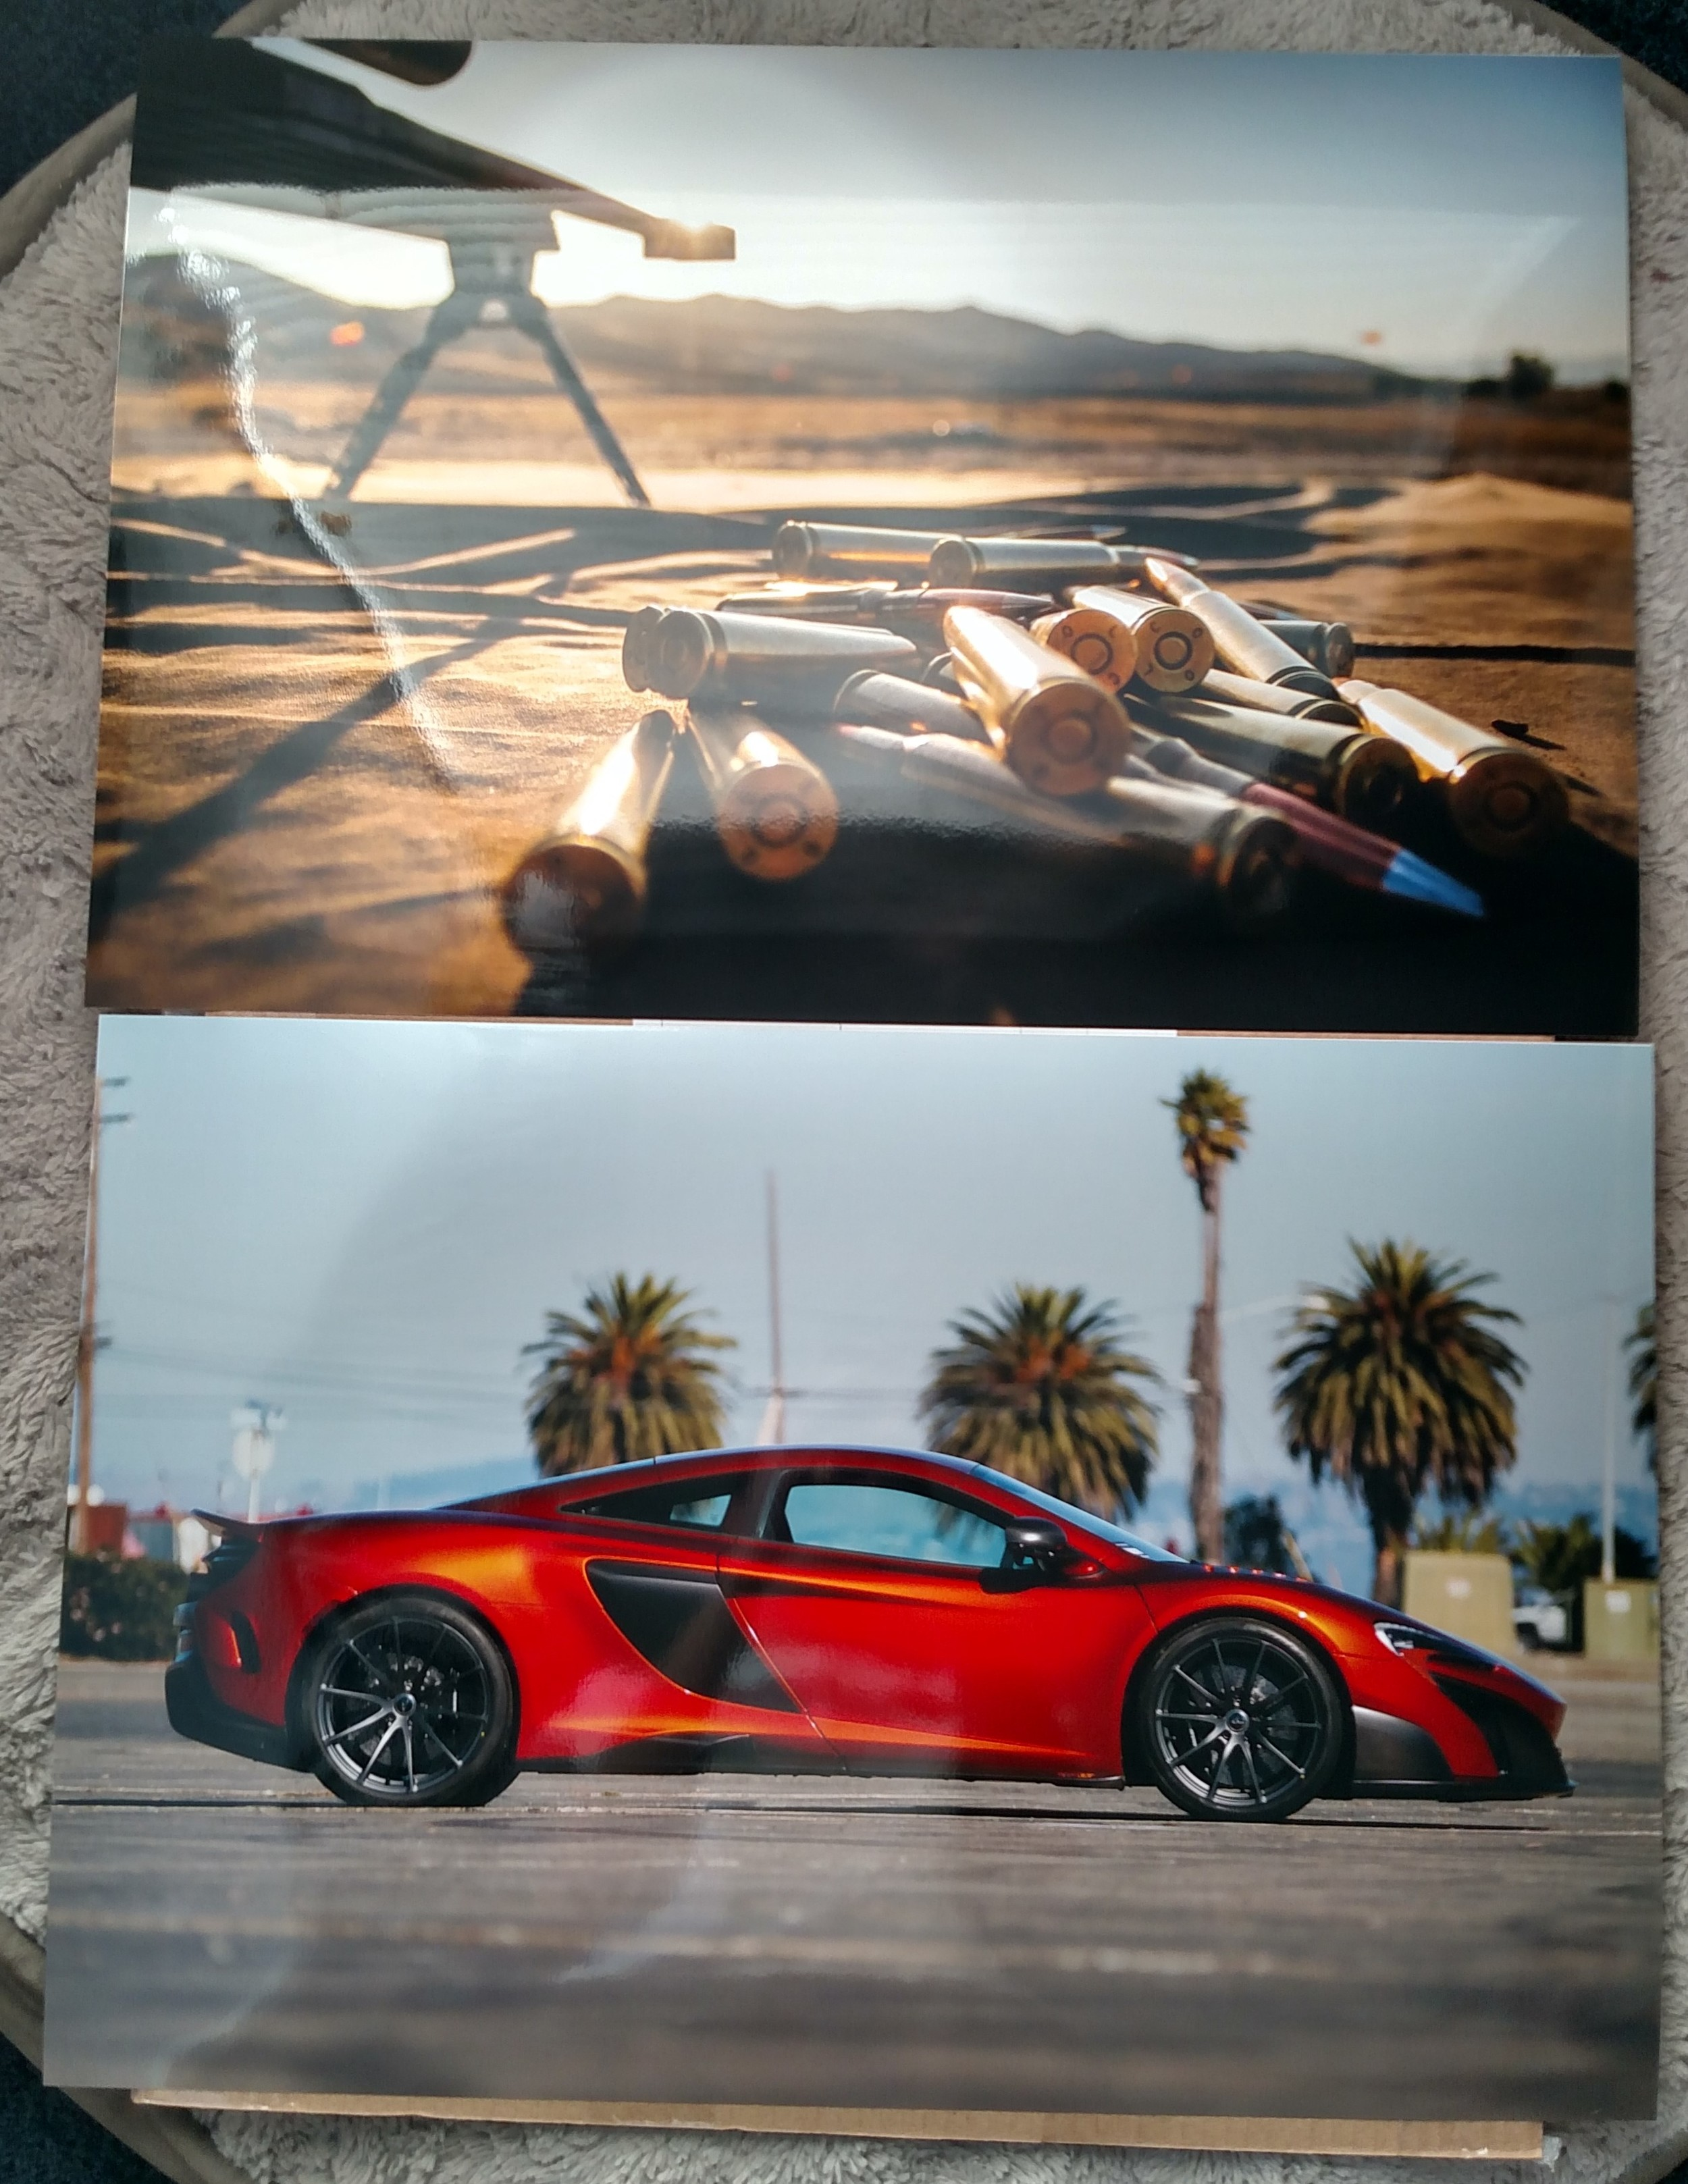 Here's two of my favorite photographs printed on high quality lab archival paper. They'll be around for generations so my future family can enjoy my work!